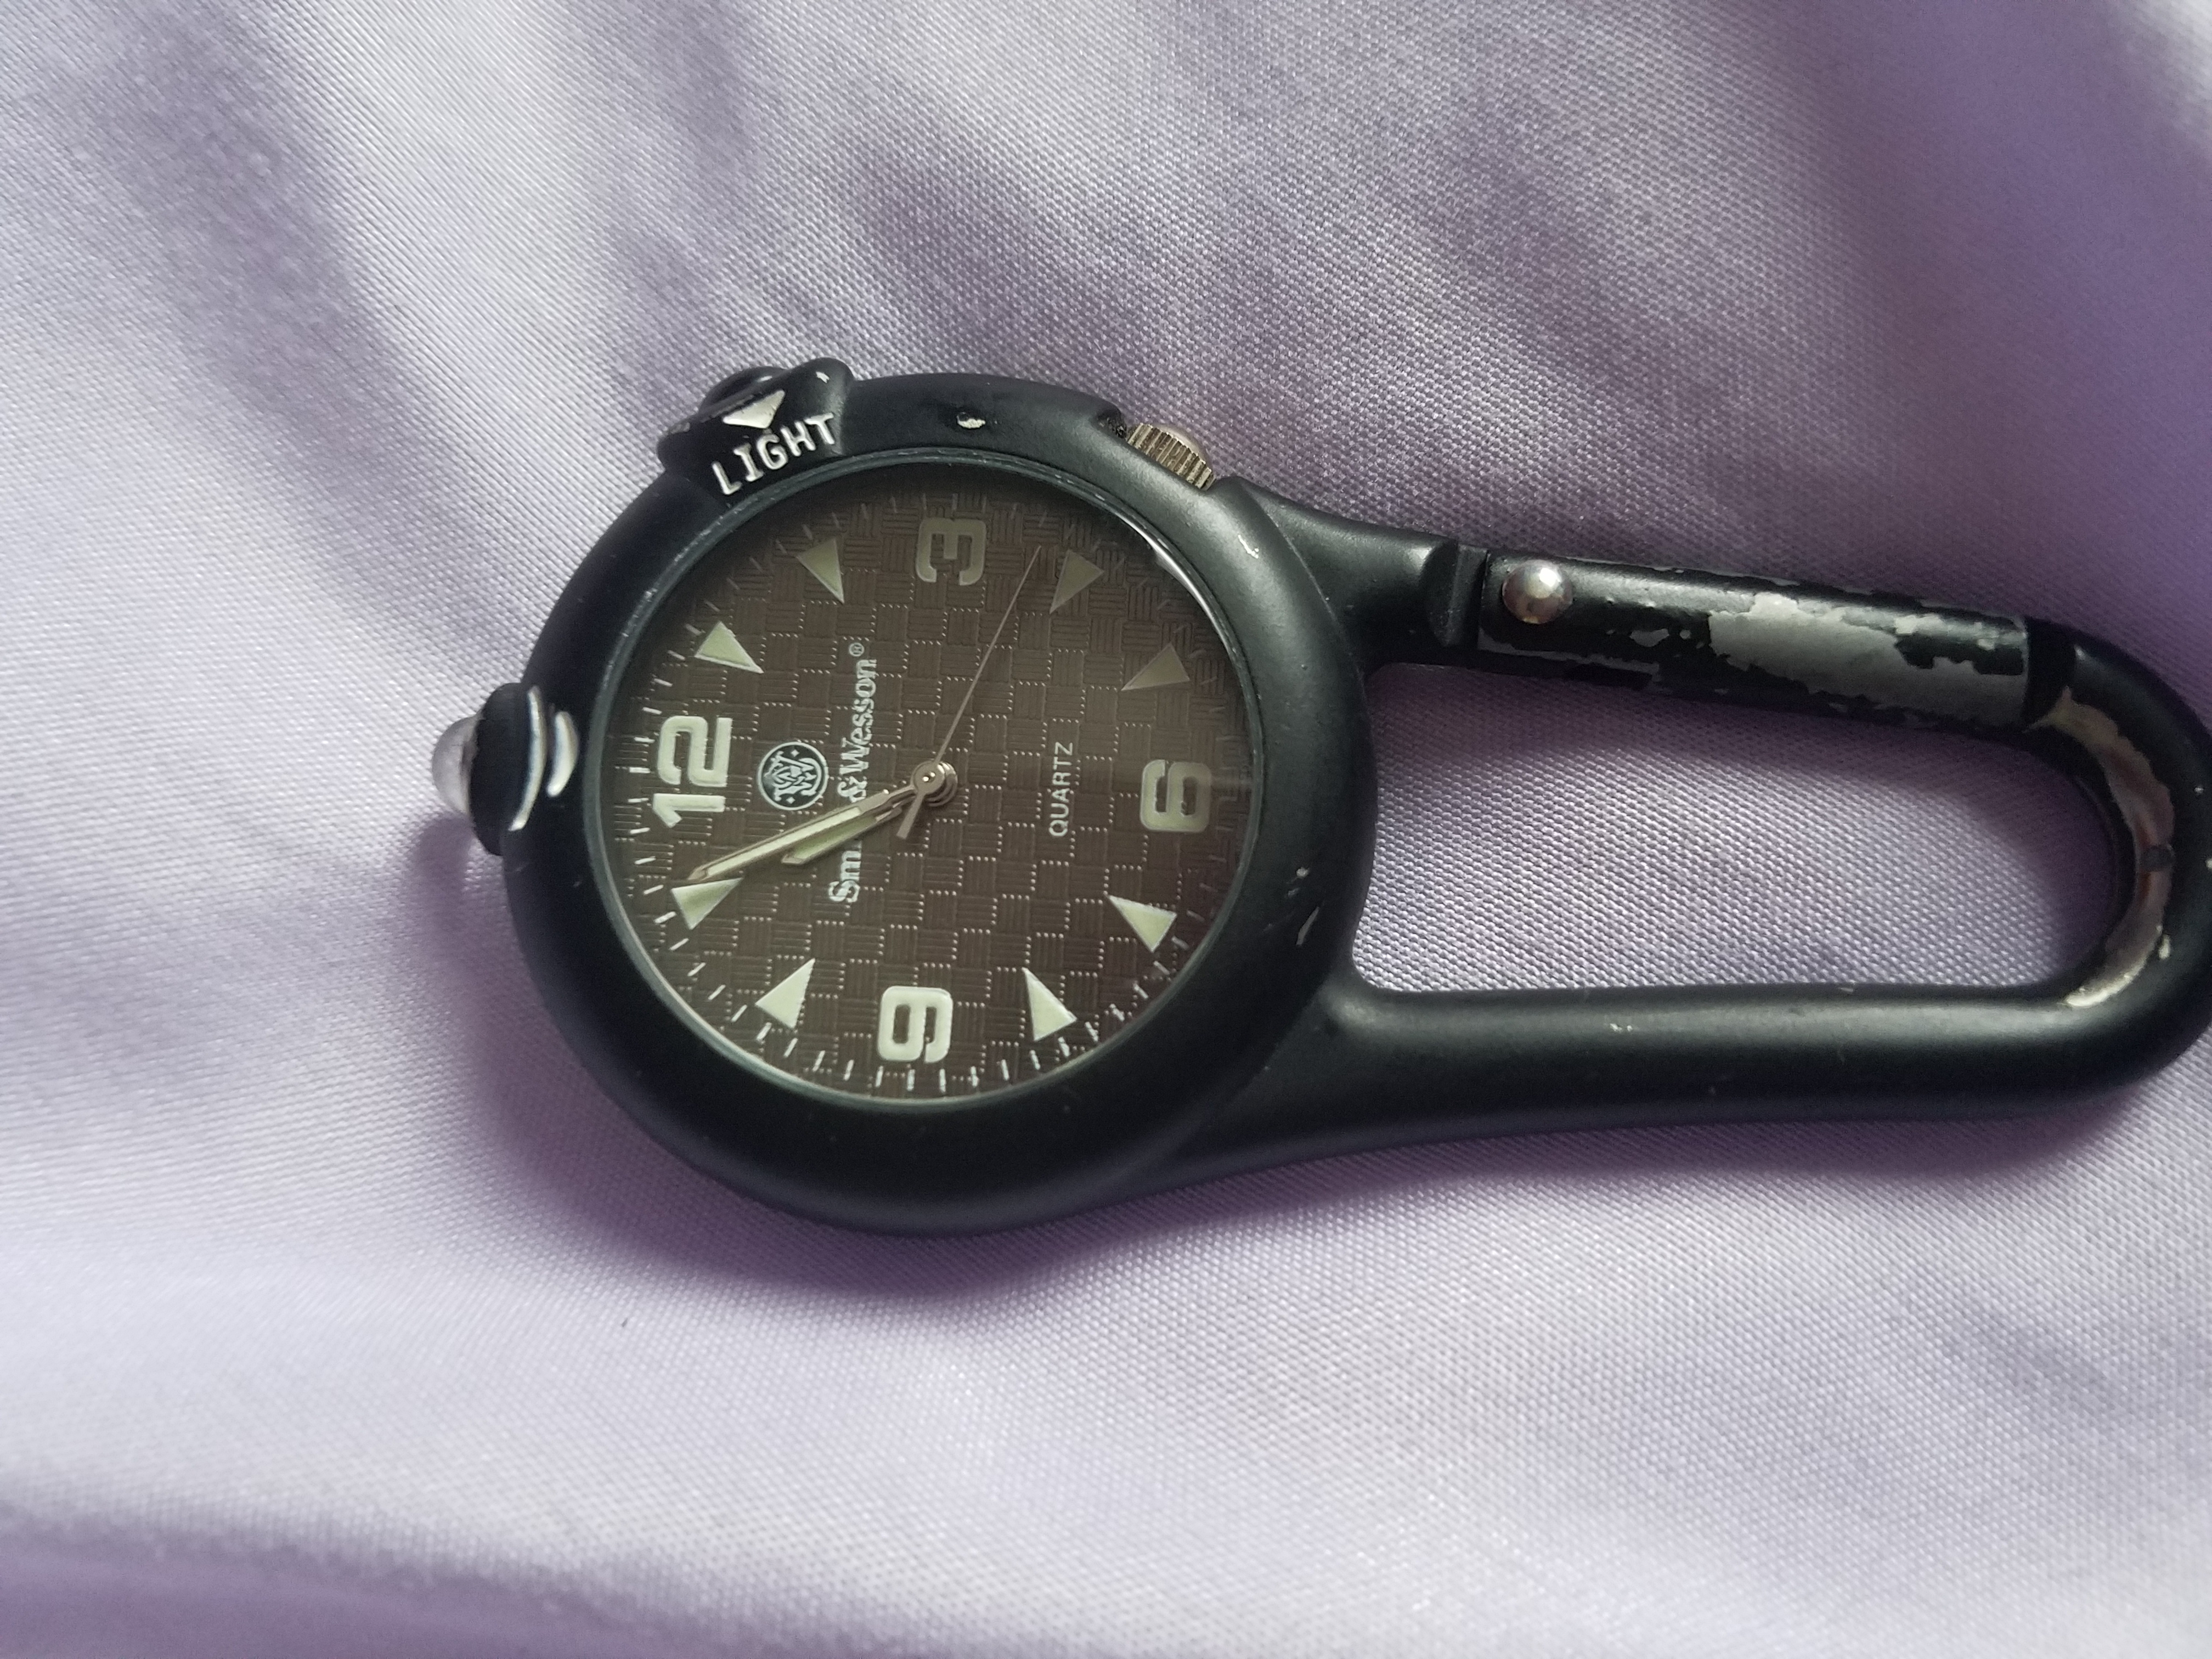 Smith & Wesson carabiner watch